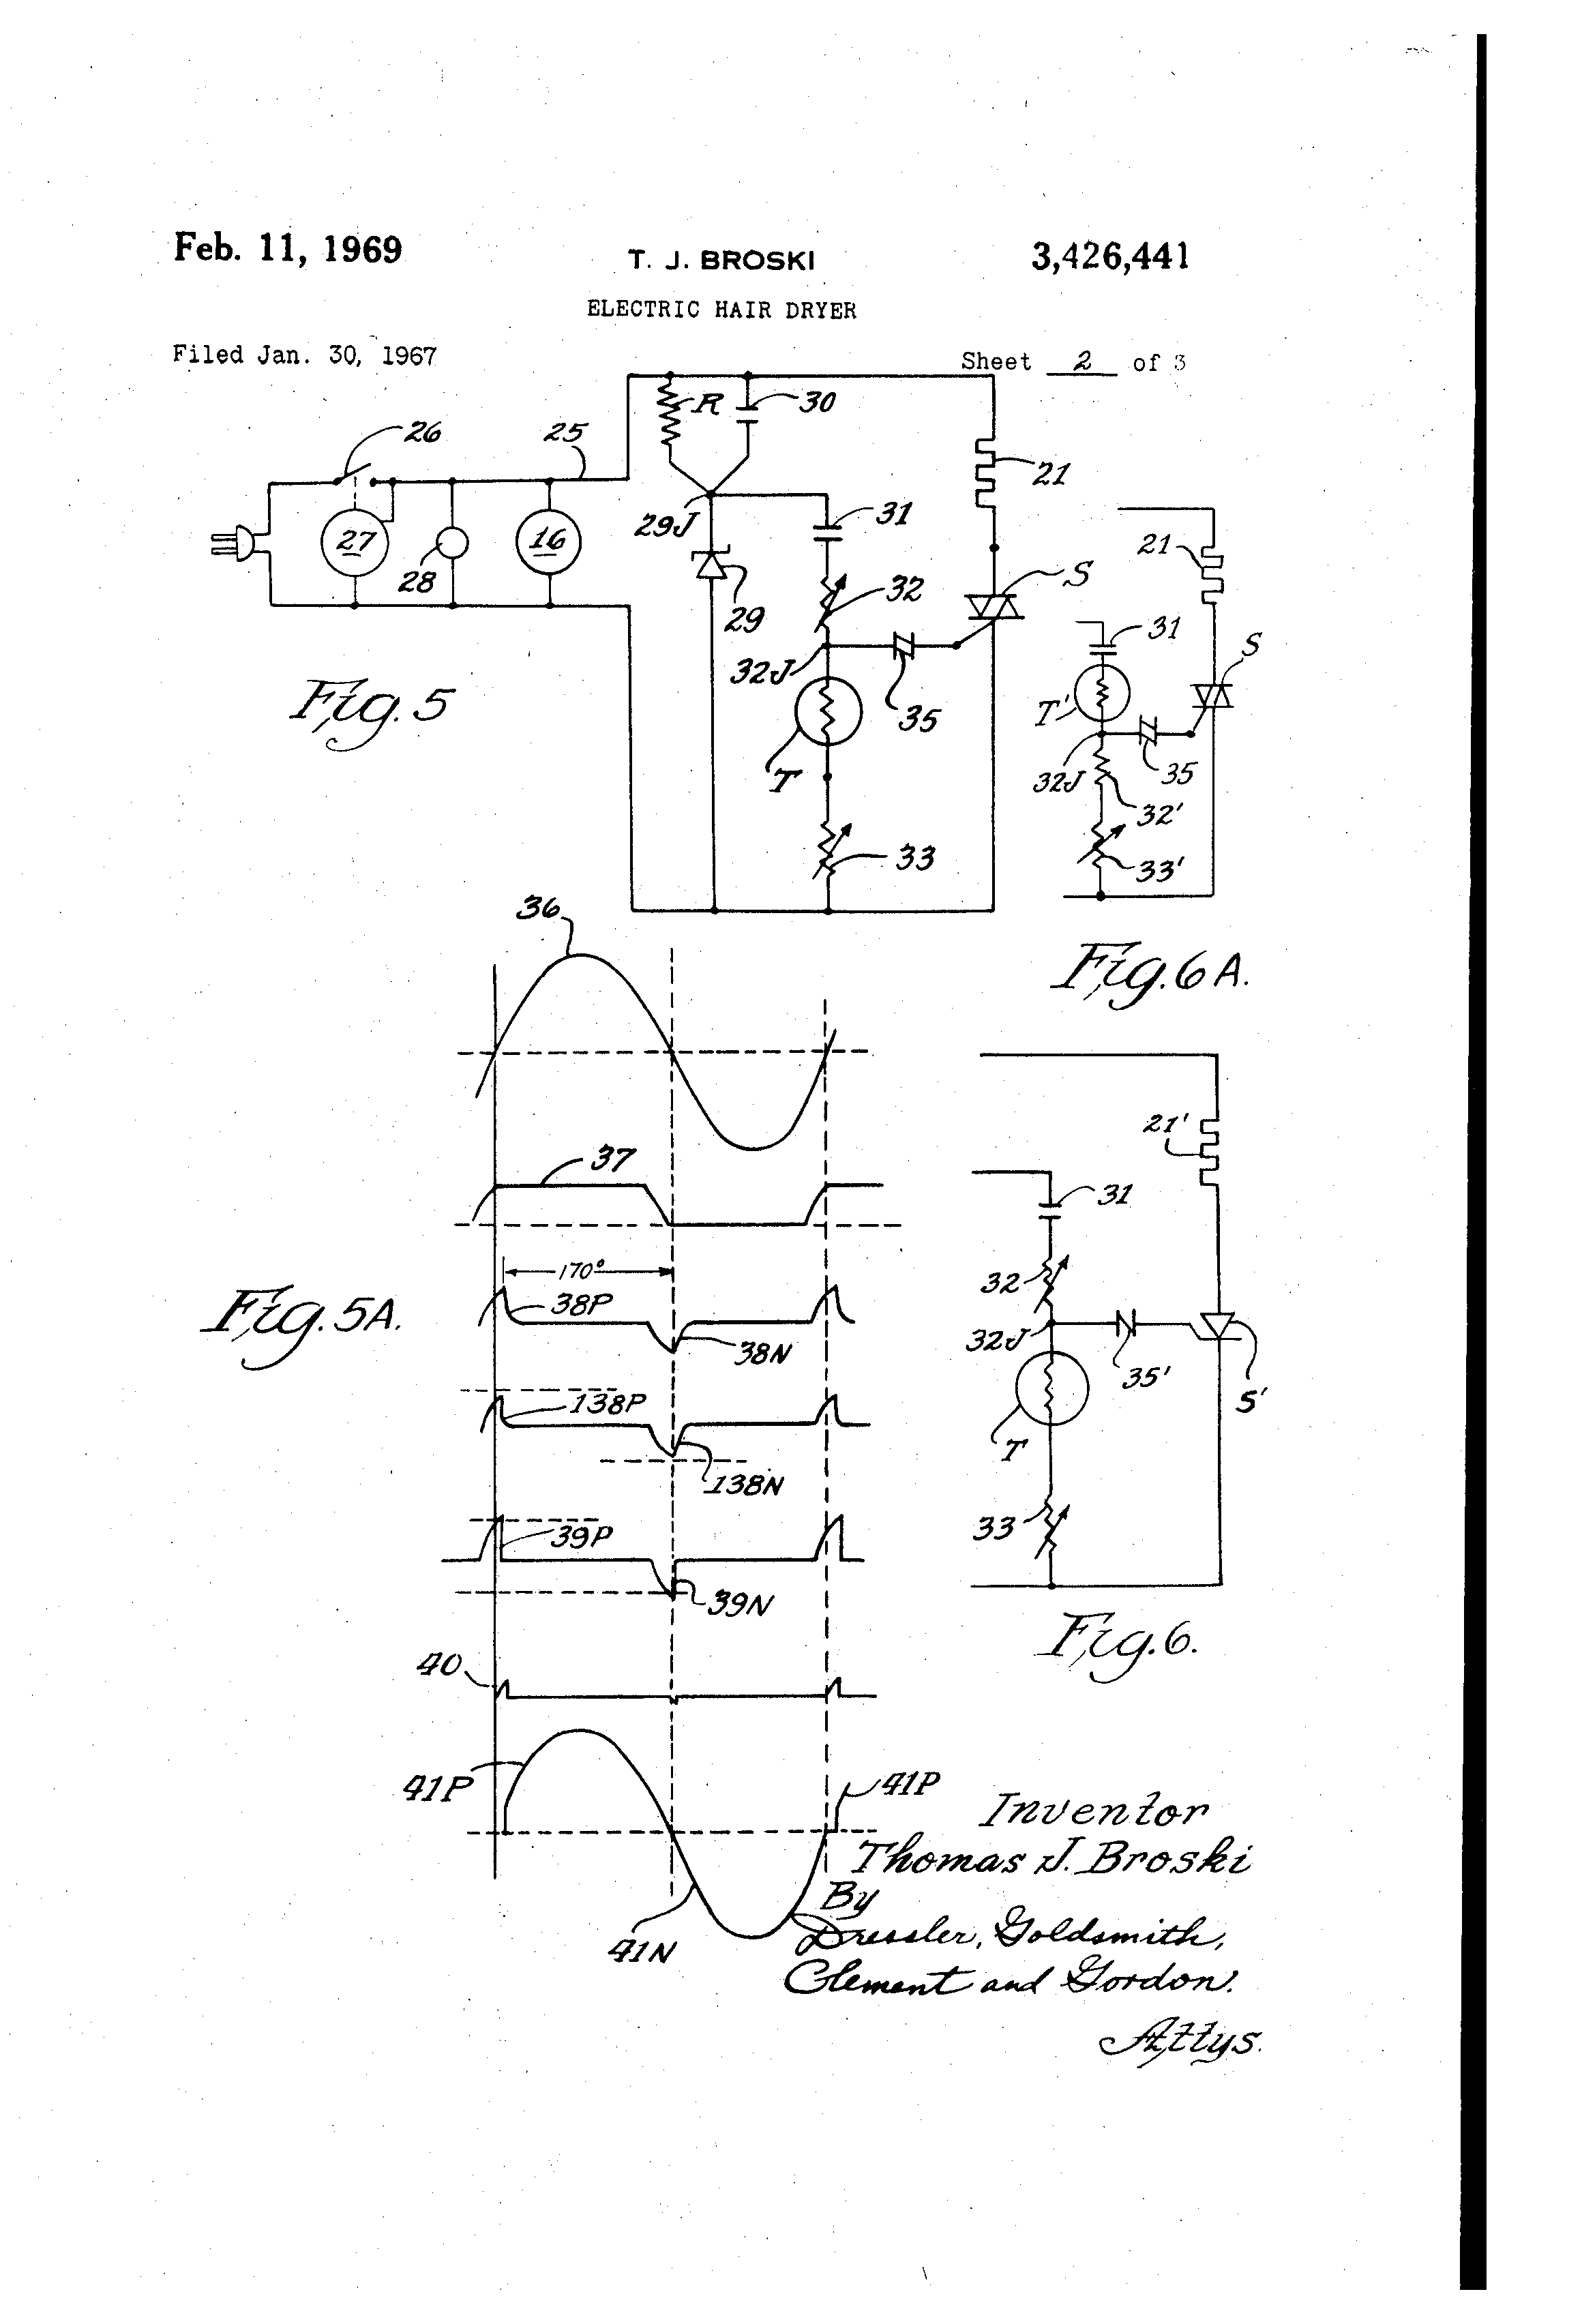 Hair Dryer Wiring Diagram 25 Images Circuit Relay Delay Free Electronic Circuits 8085 Projects Us3426441 1 Patent Electric Google Patents At Cita